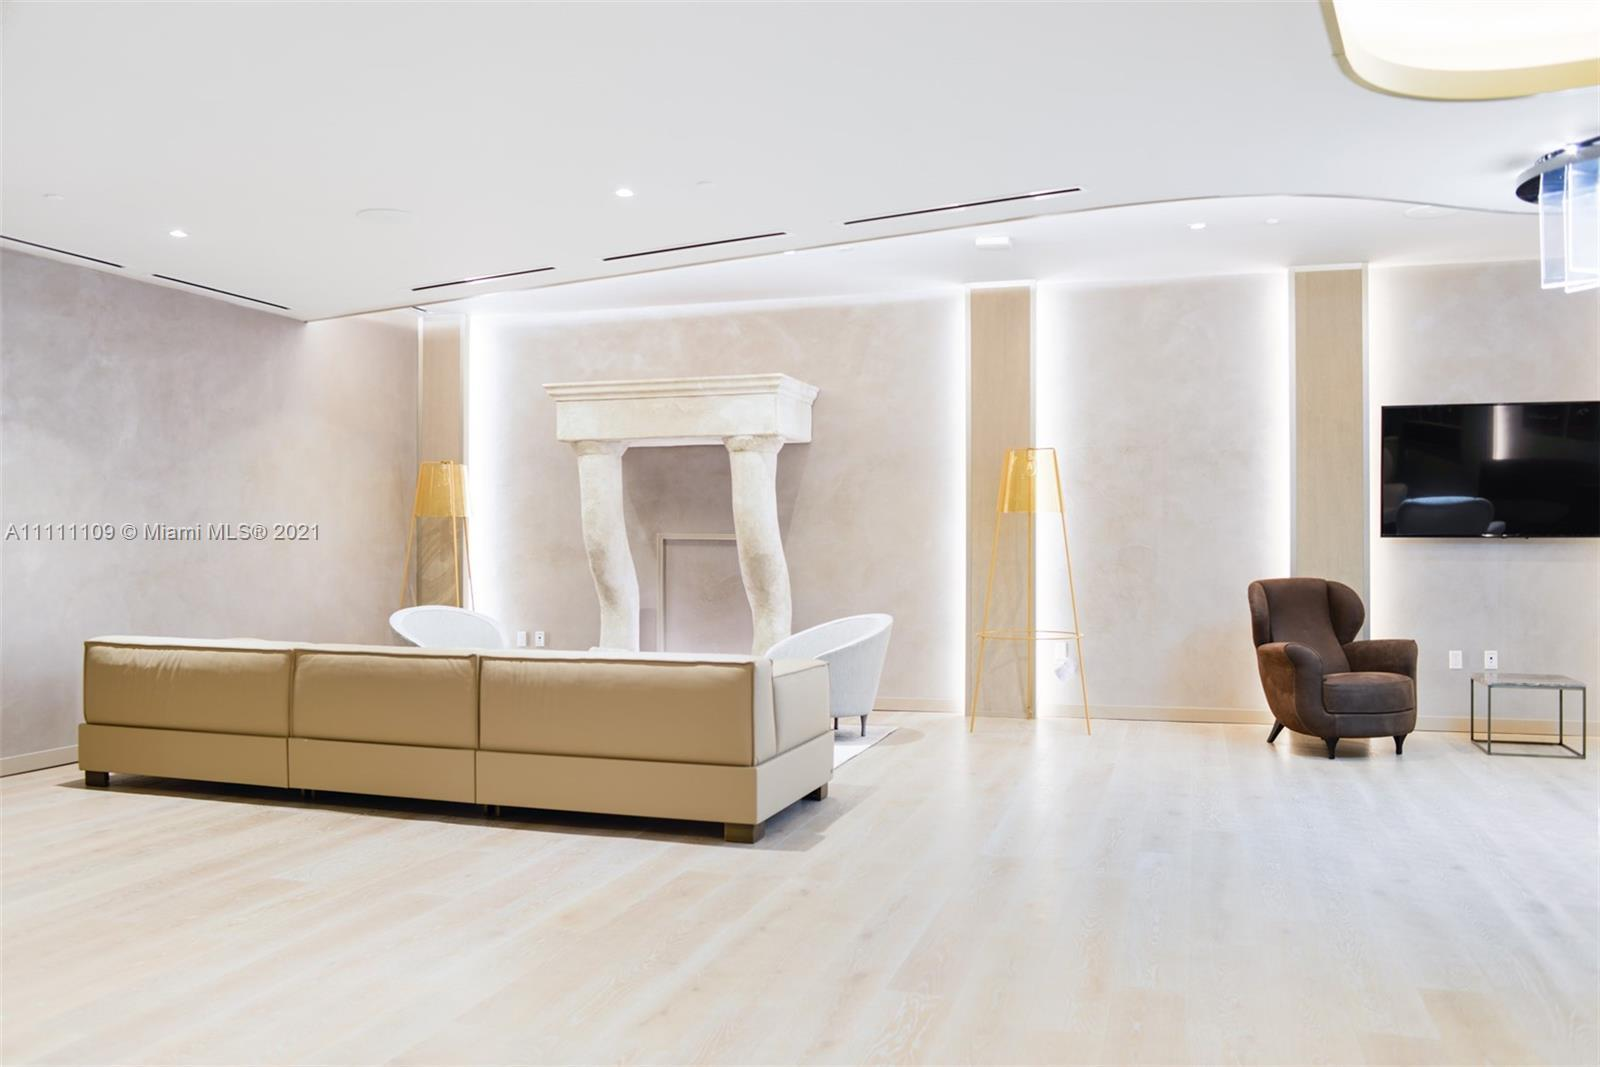 Spectacular brand new upgraded unit at the iconic Brickell Flatiron. Huge corner unit, 2 bedrooms /